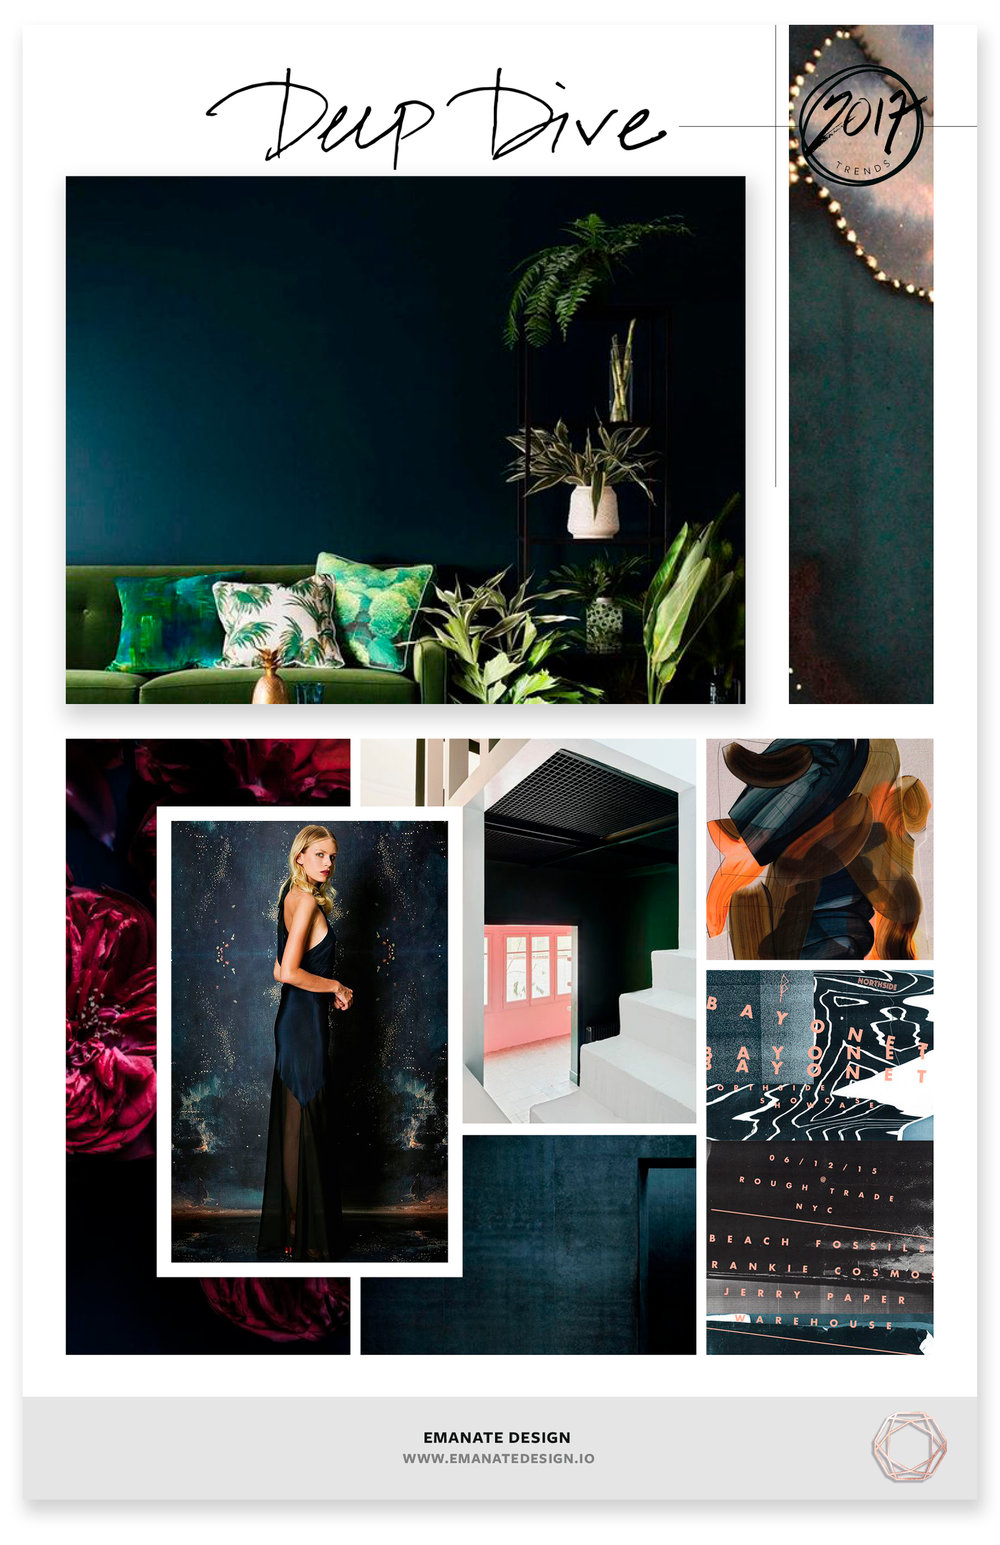 2017 Trends / Deep Dive / Emanate Design  Clockwise from Left:  Living Room ,  Ink ,  Paint Strokes ,  Bayonet ,  Navy Room ,  Flowers ,  Gown ,  Stairwell